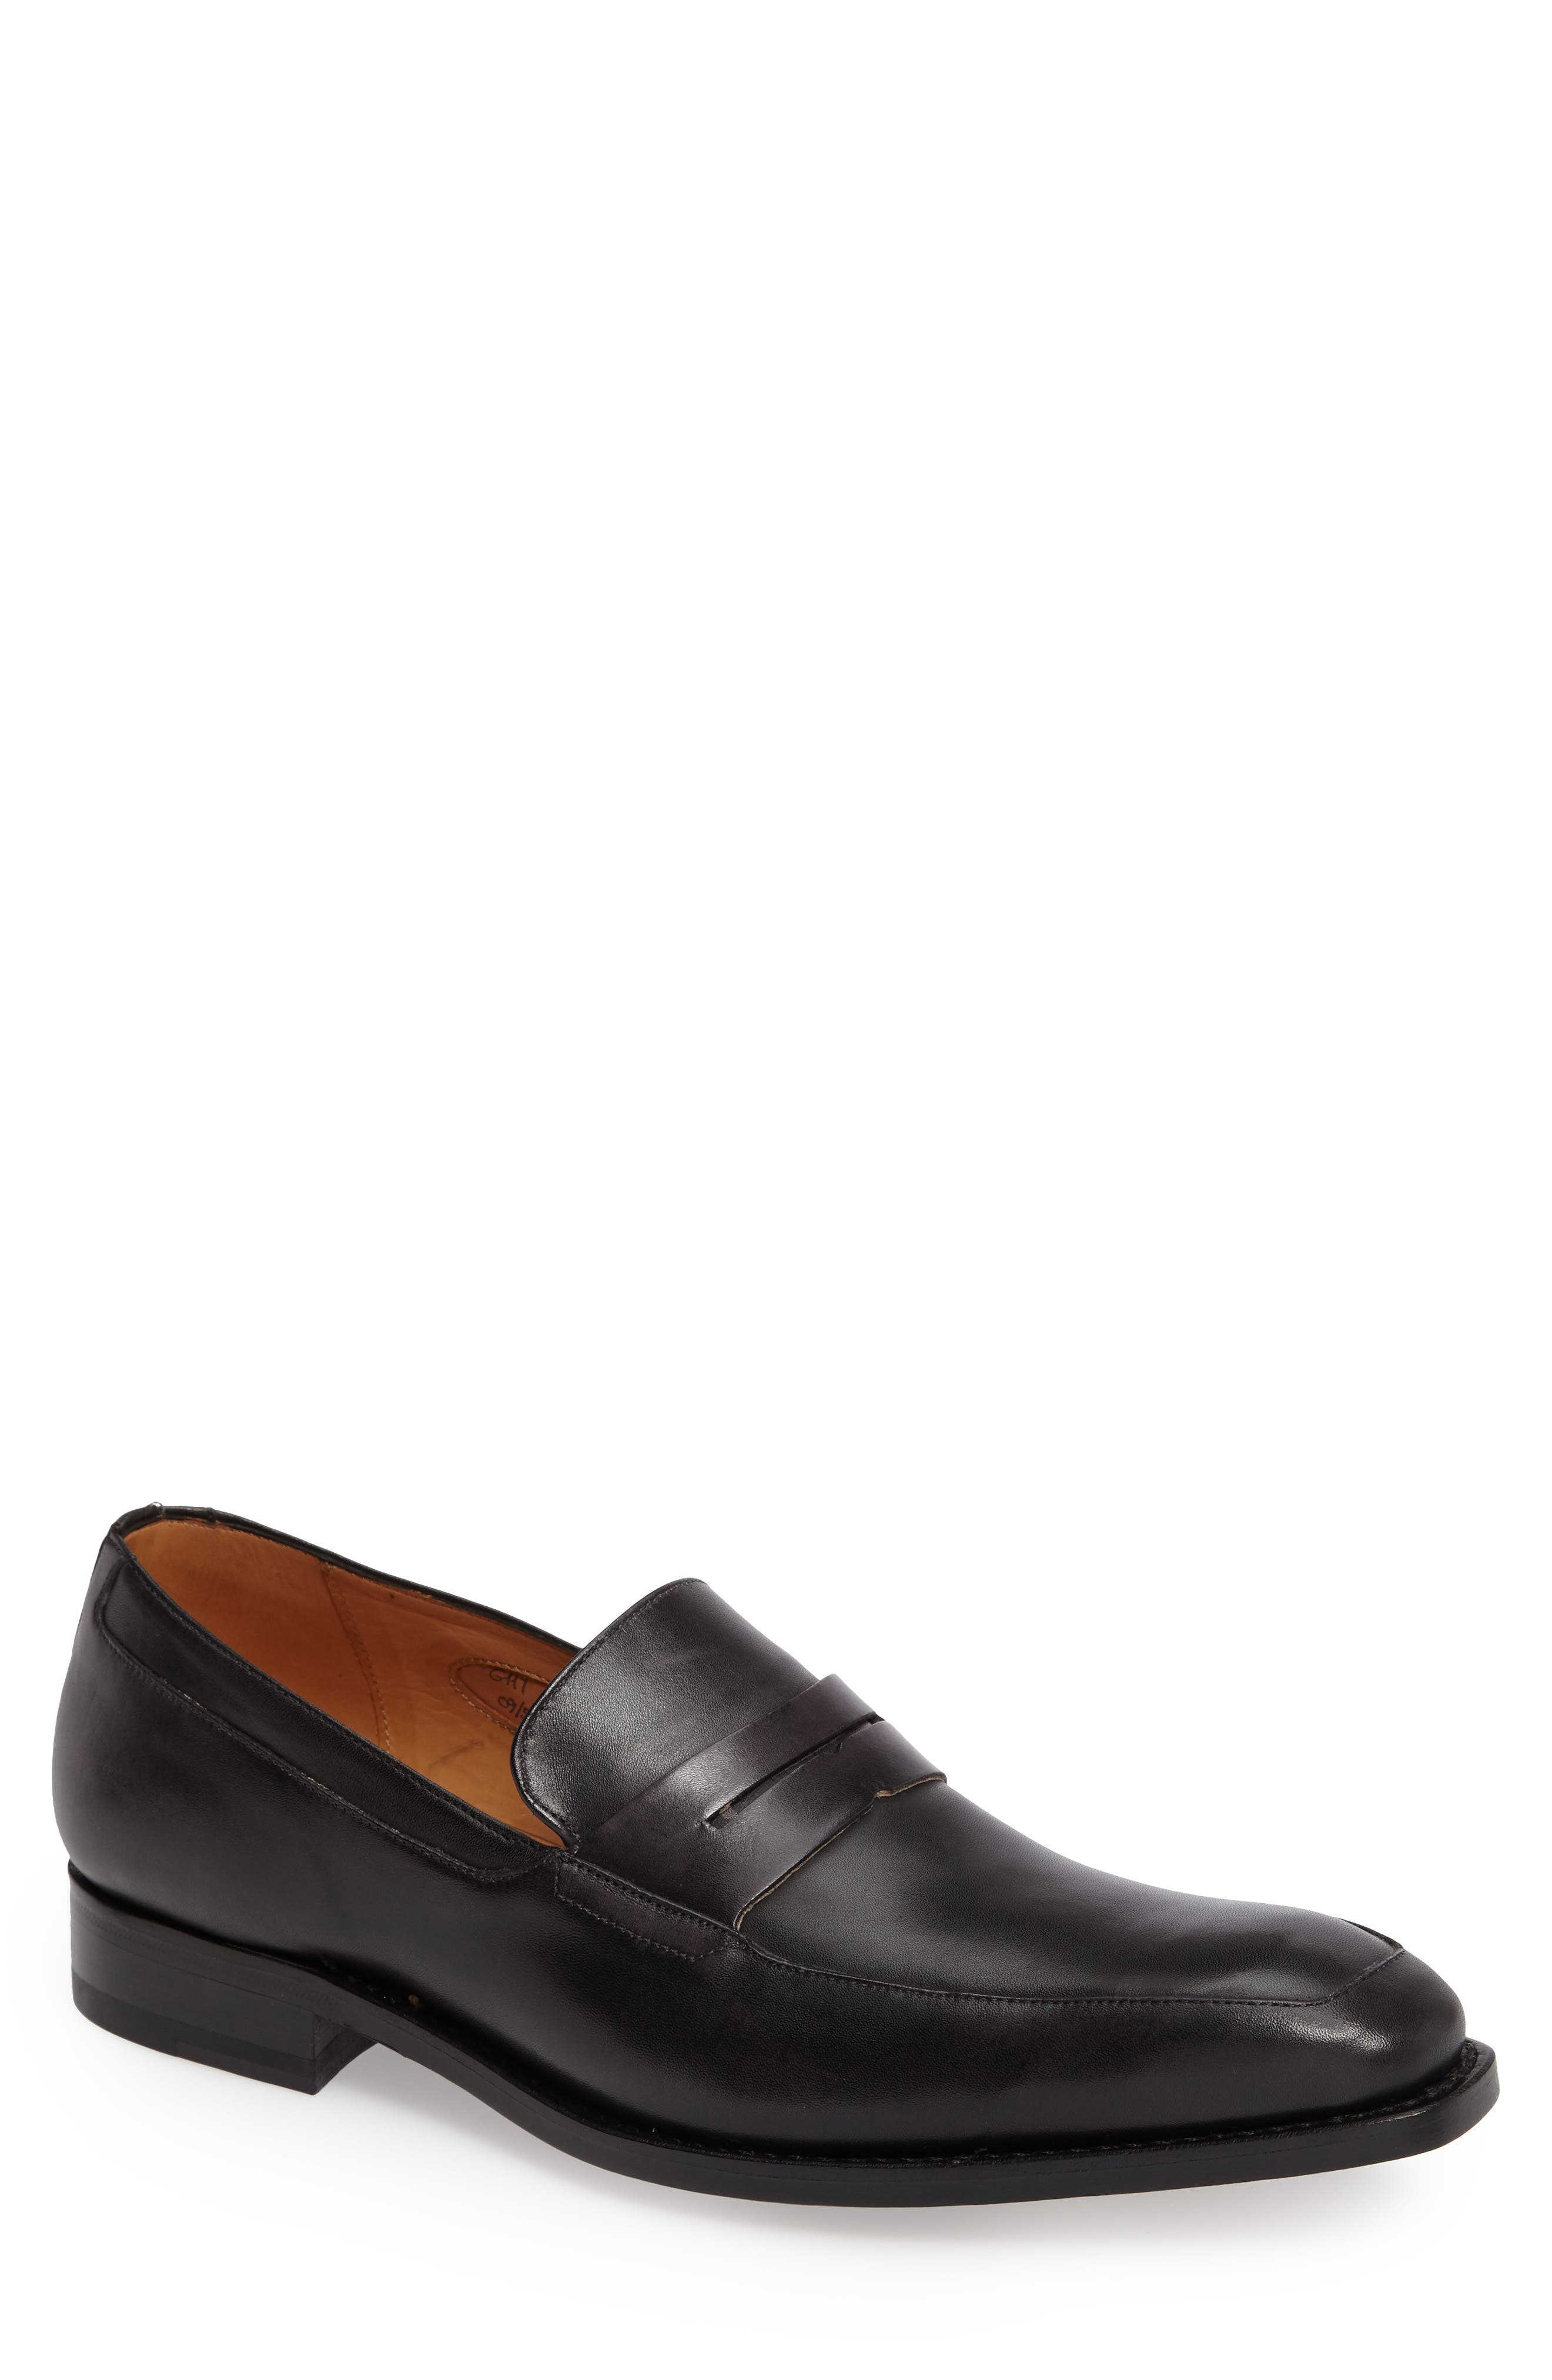 IMPRONTA by Mezlan G117 Penny Loafer